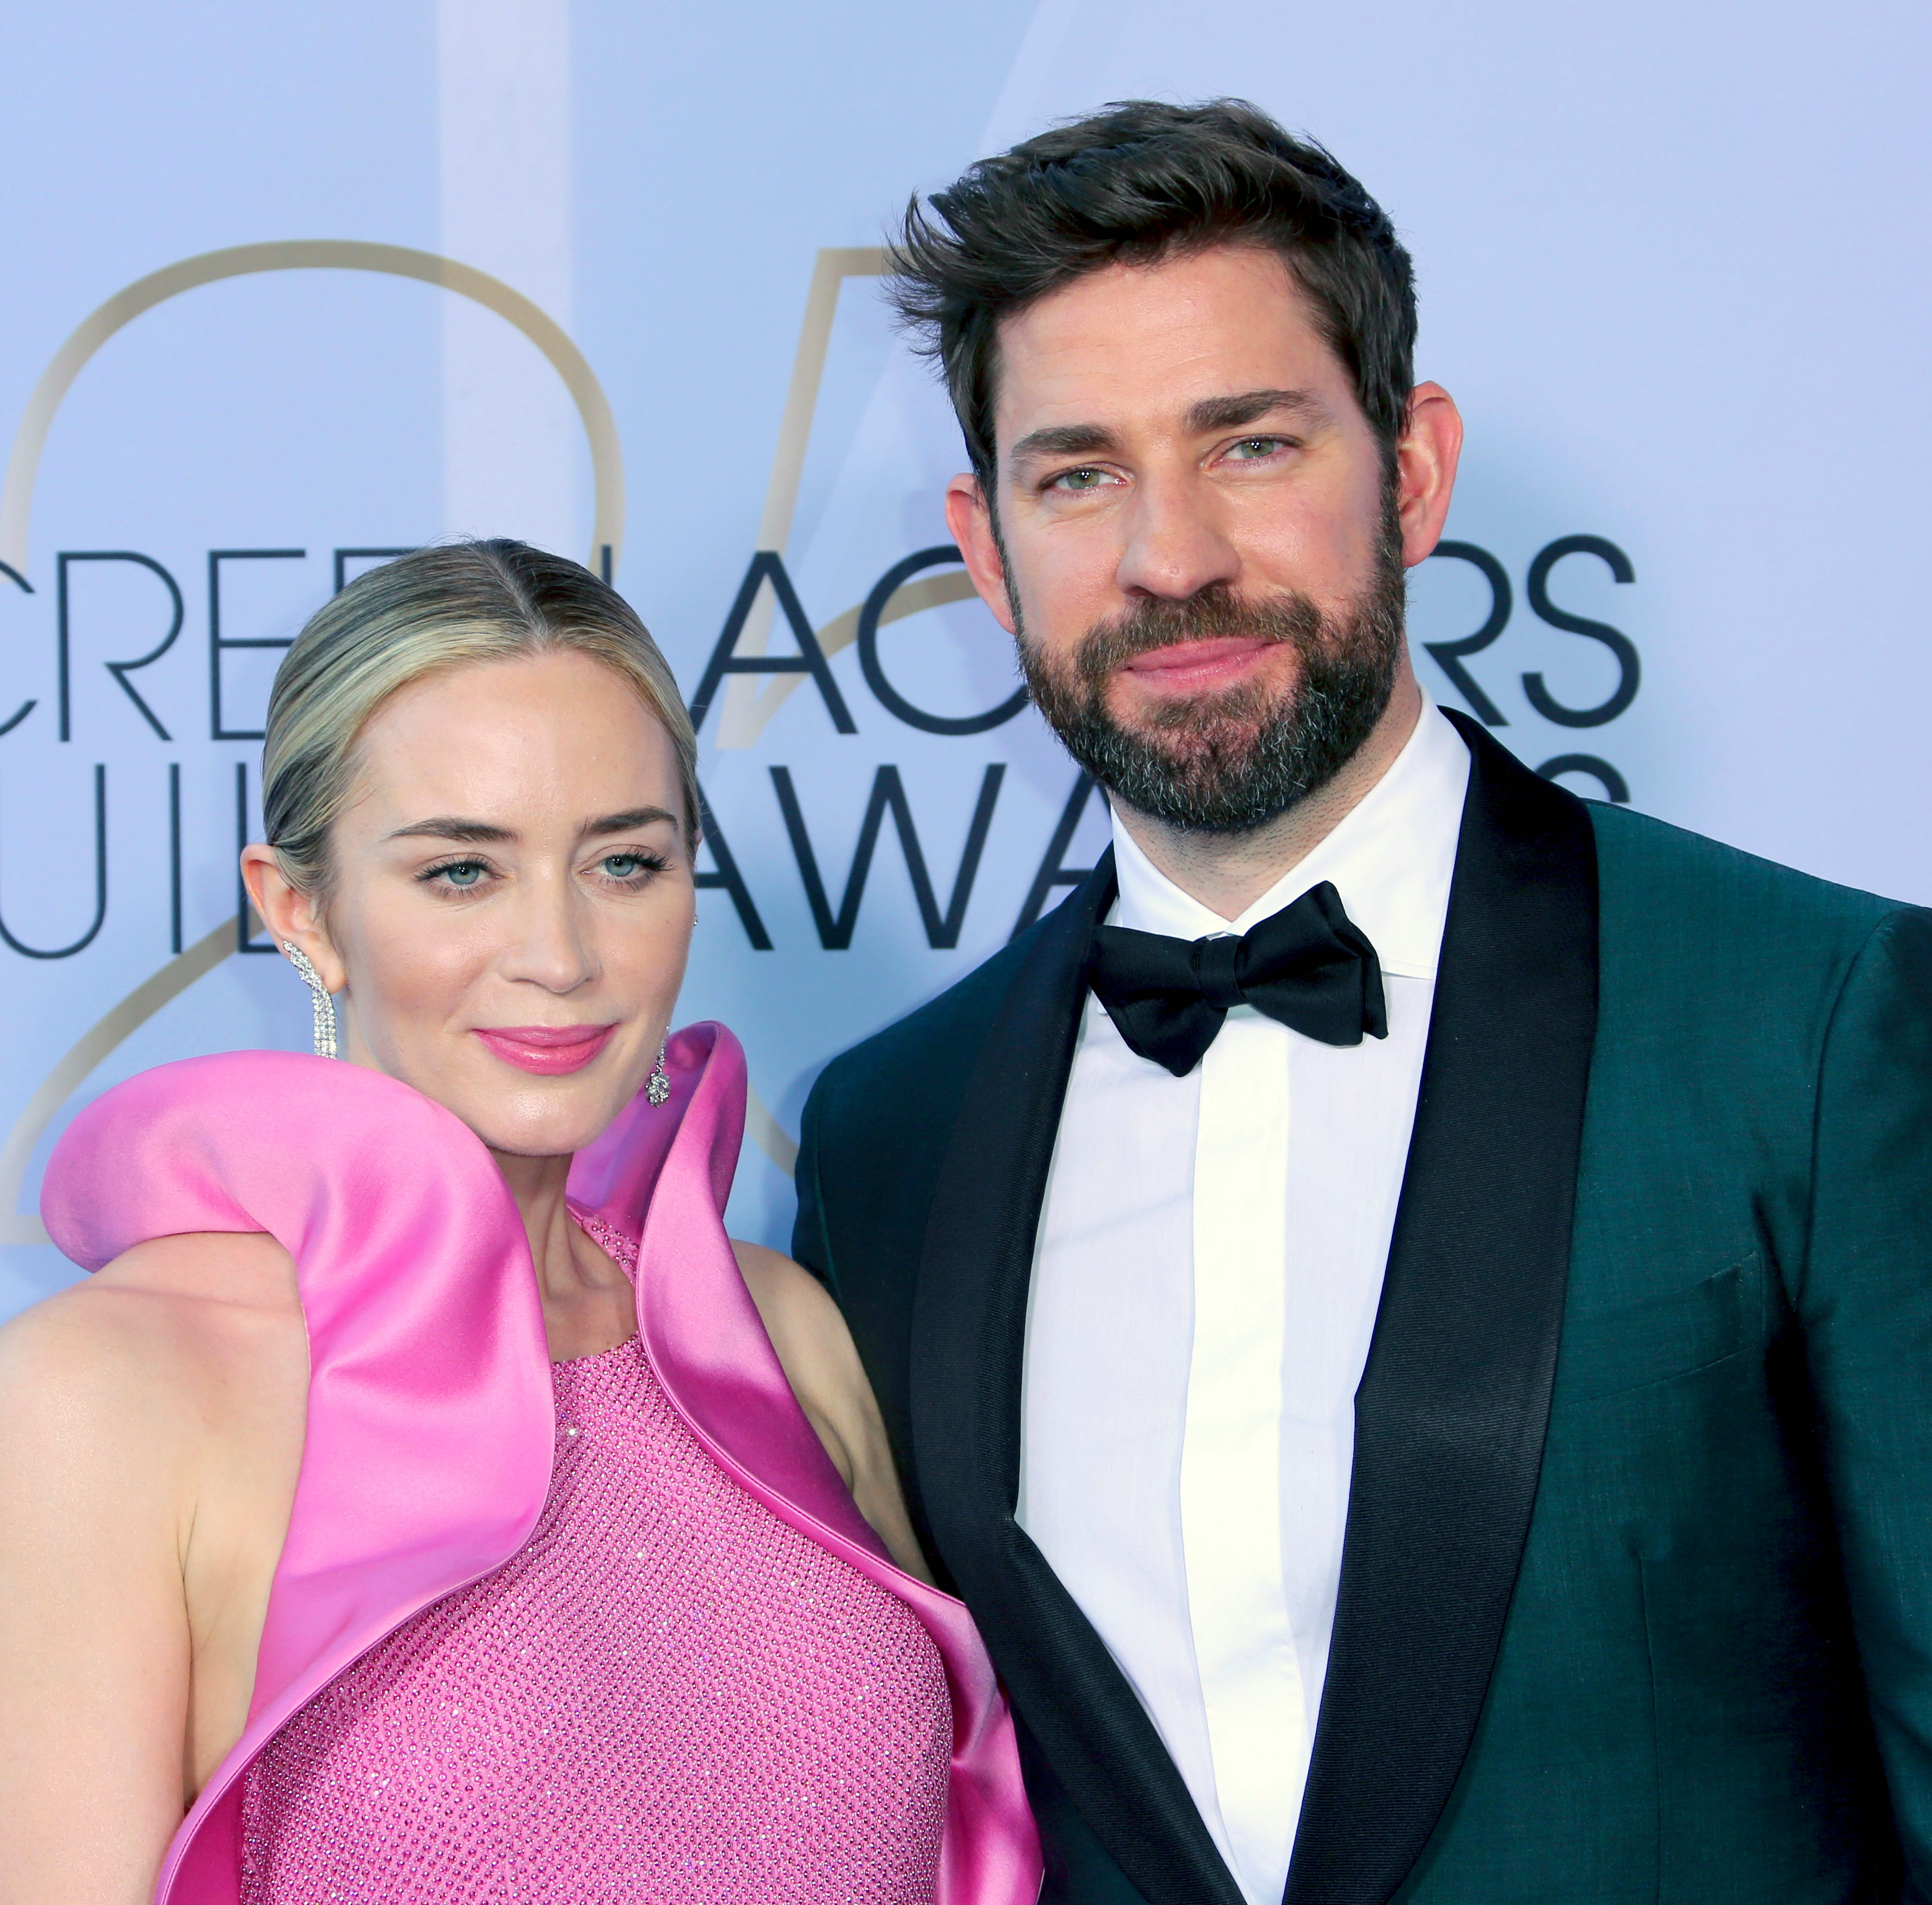 Emily Blunt and John Krasinski arrive at the 25th annual Screen Actors Guild Awards on Sunday, Jan. 27, 2019, in Los Angeles.